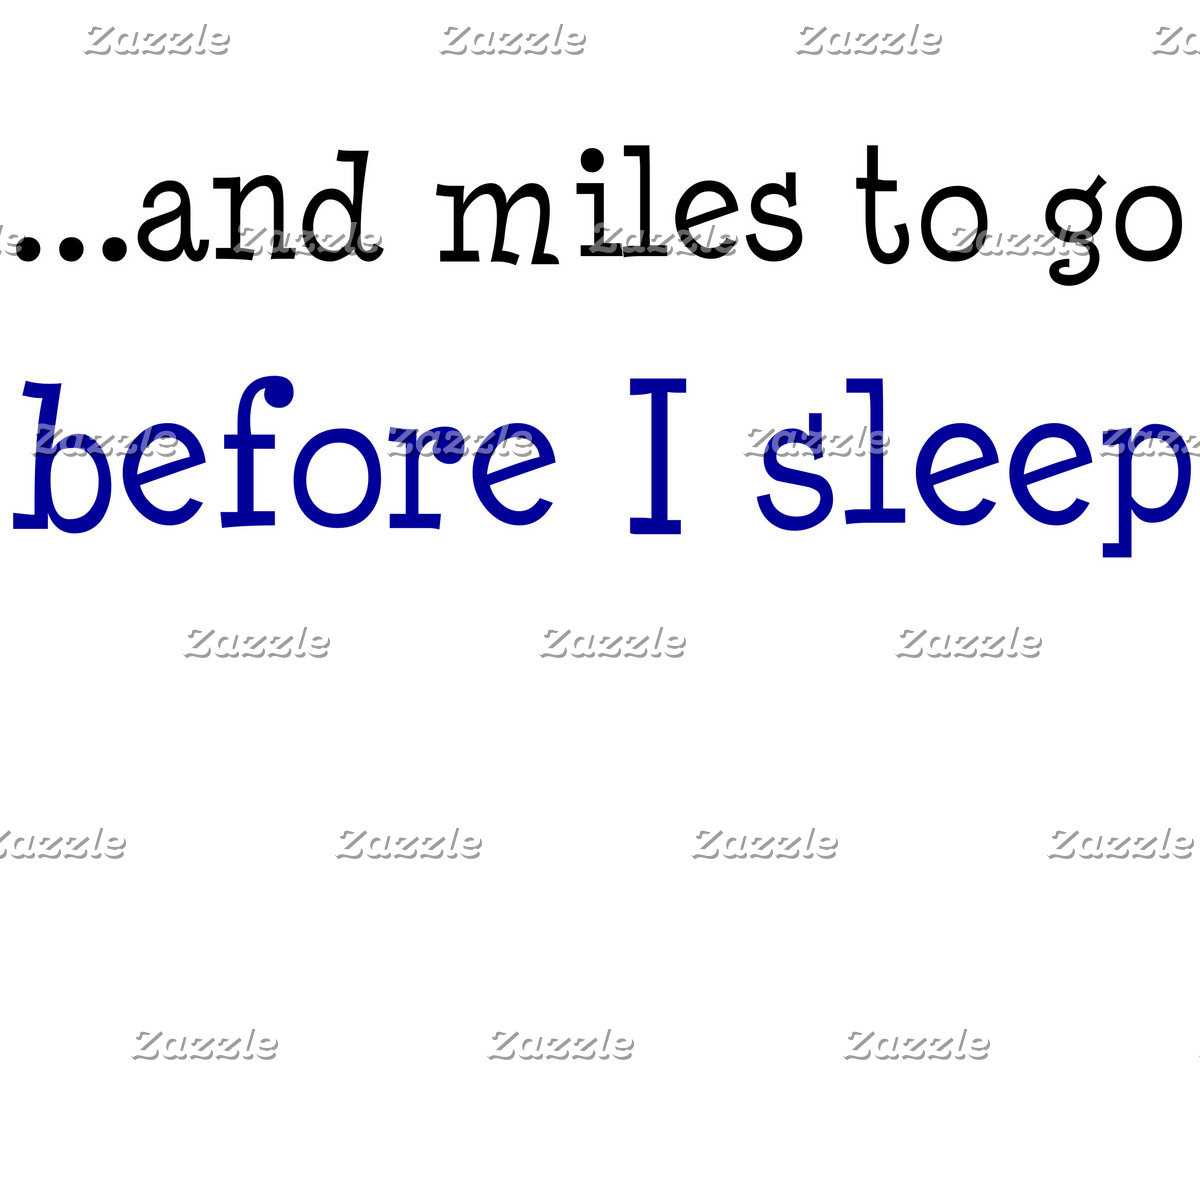 ...and miles to go before I sleep